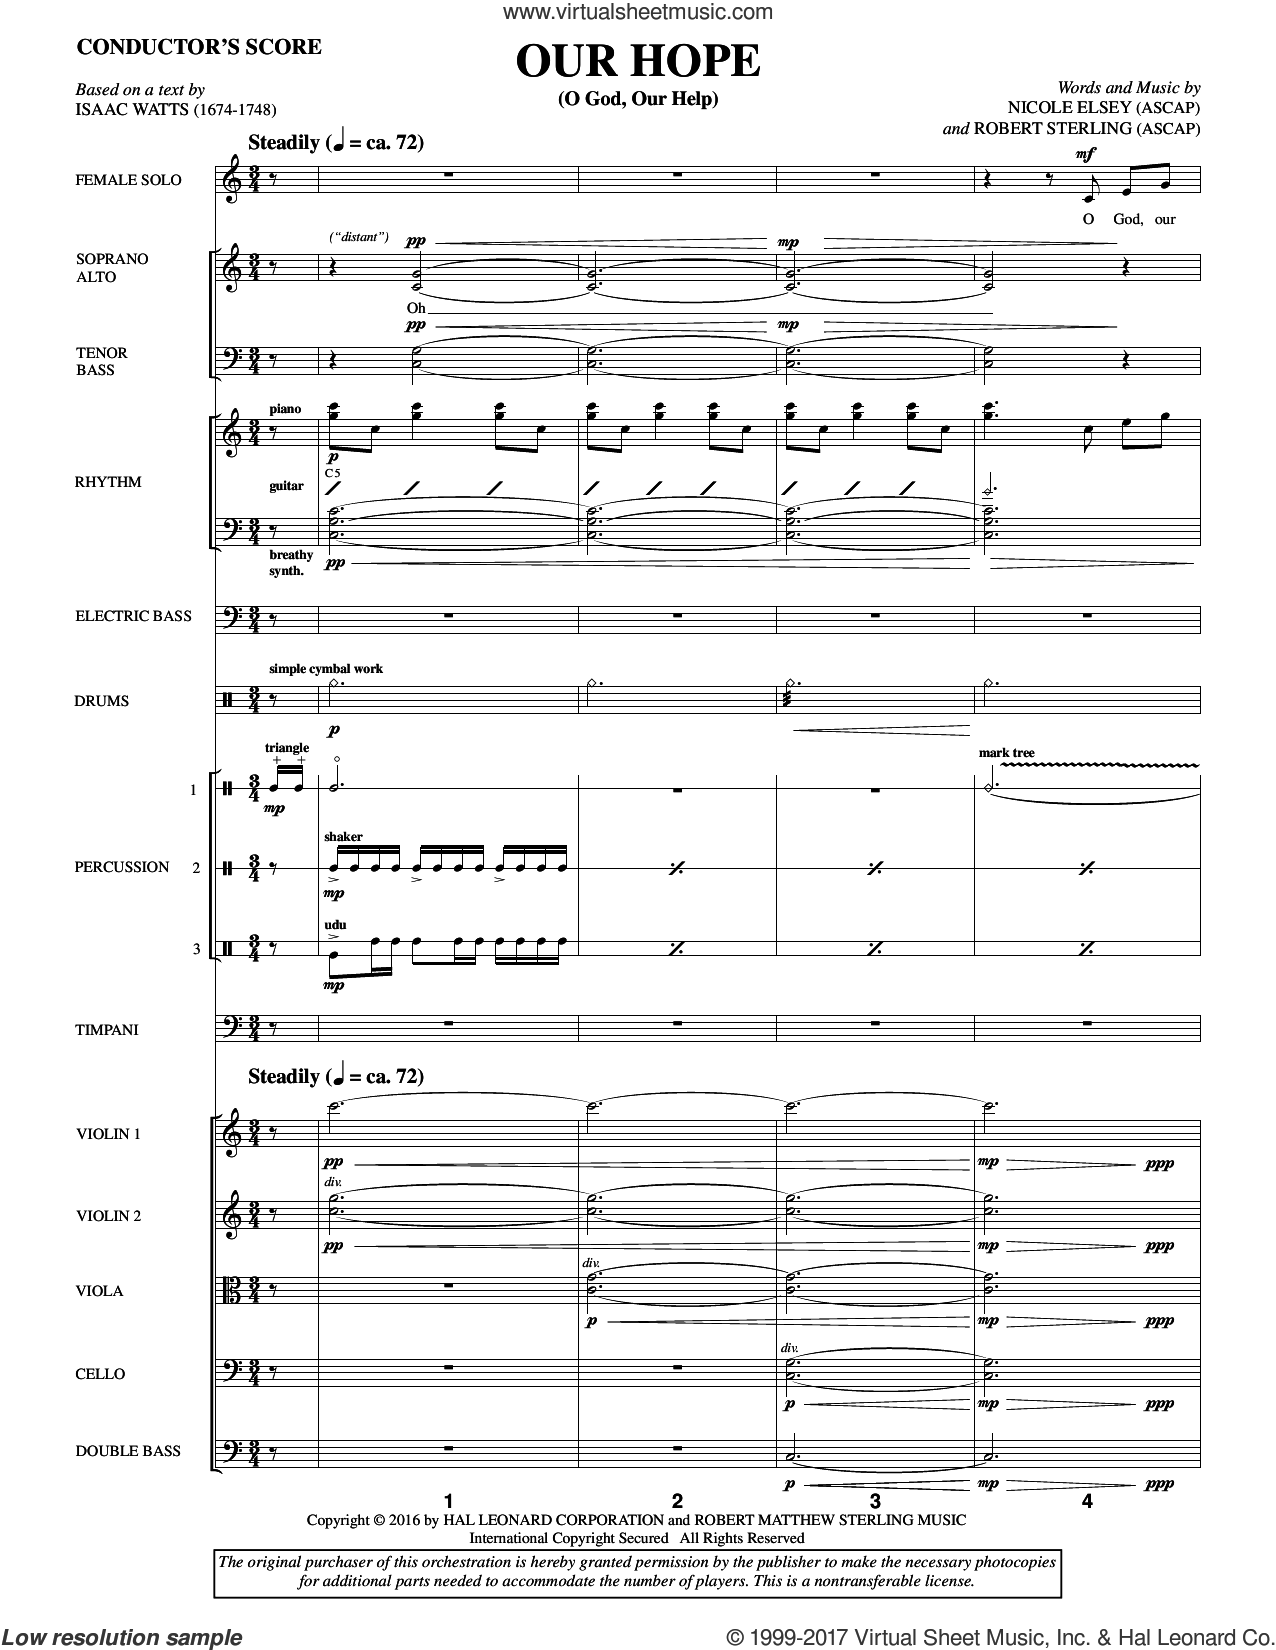 Our Hope (COMPLETE) sheet music for orchestra/band by Robert Sterling, Isaac Watts and Nicole Elsey, intermediate skill level